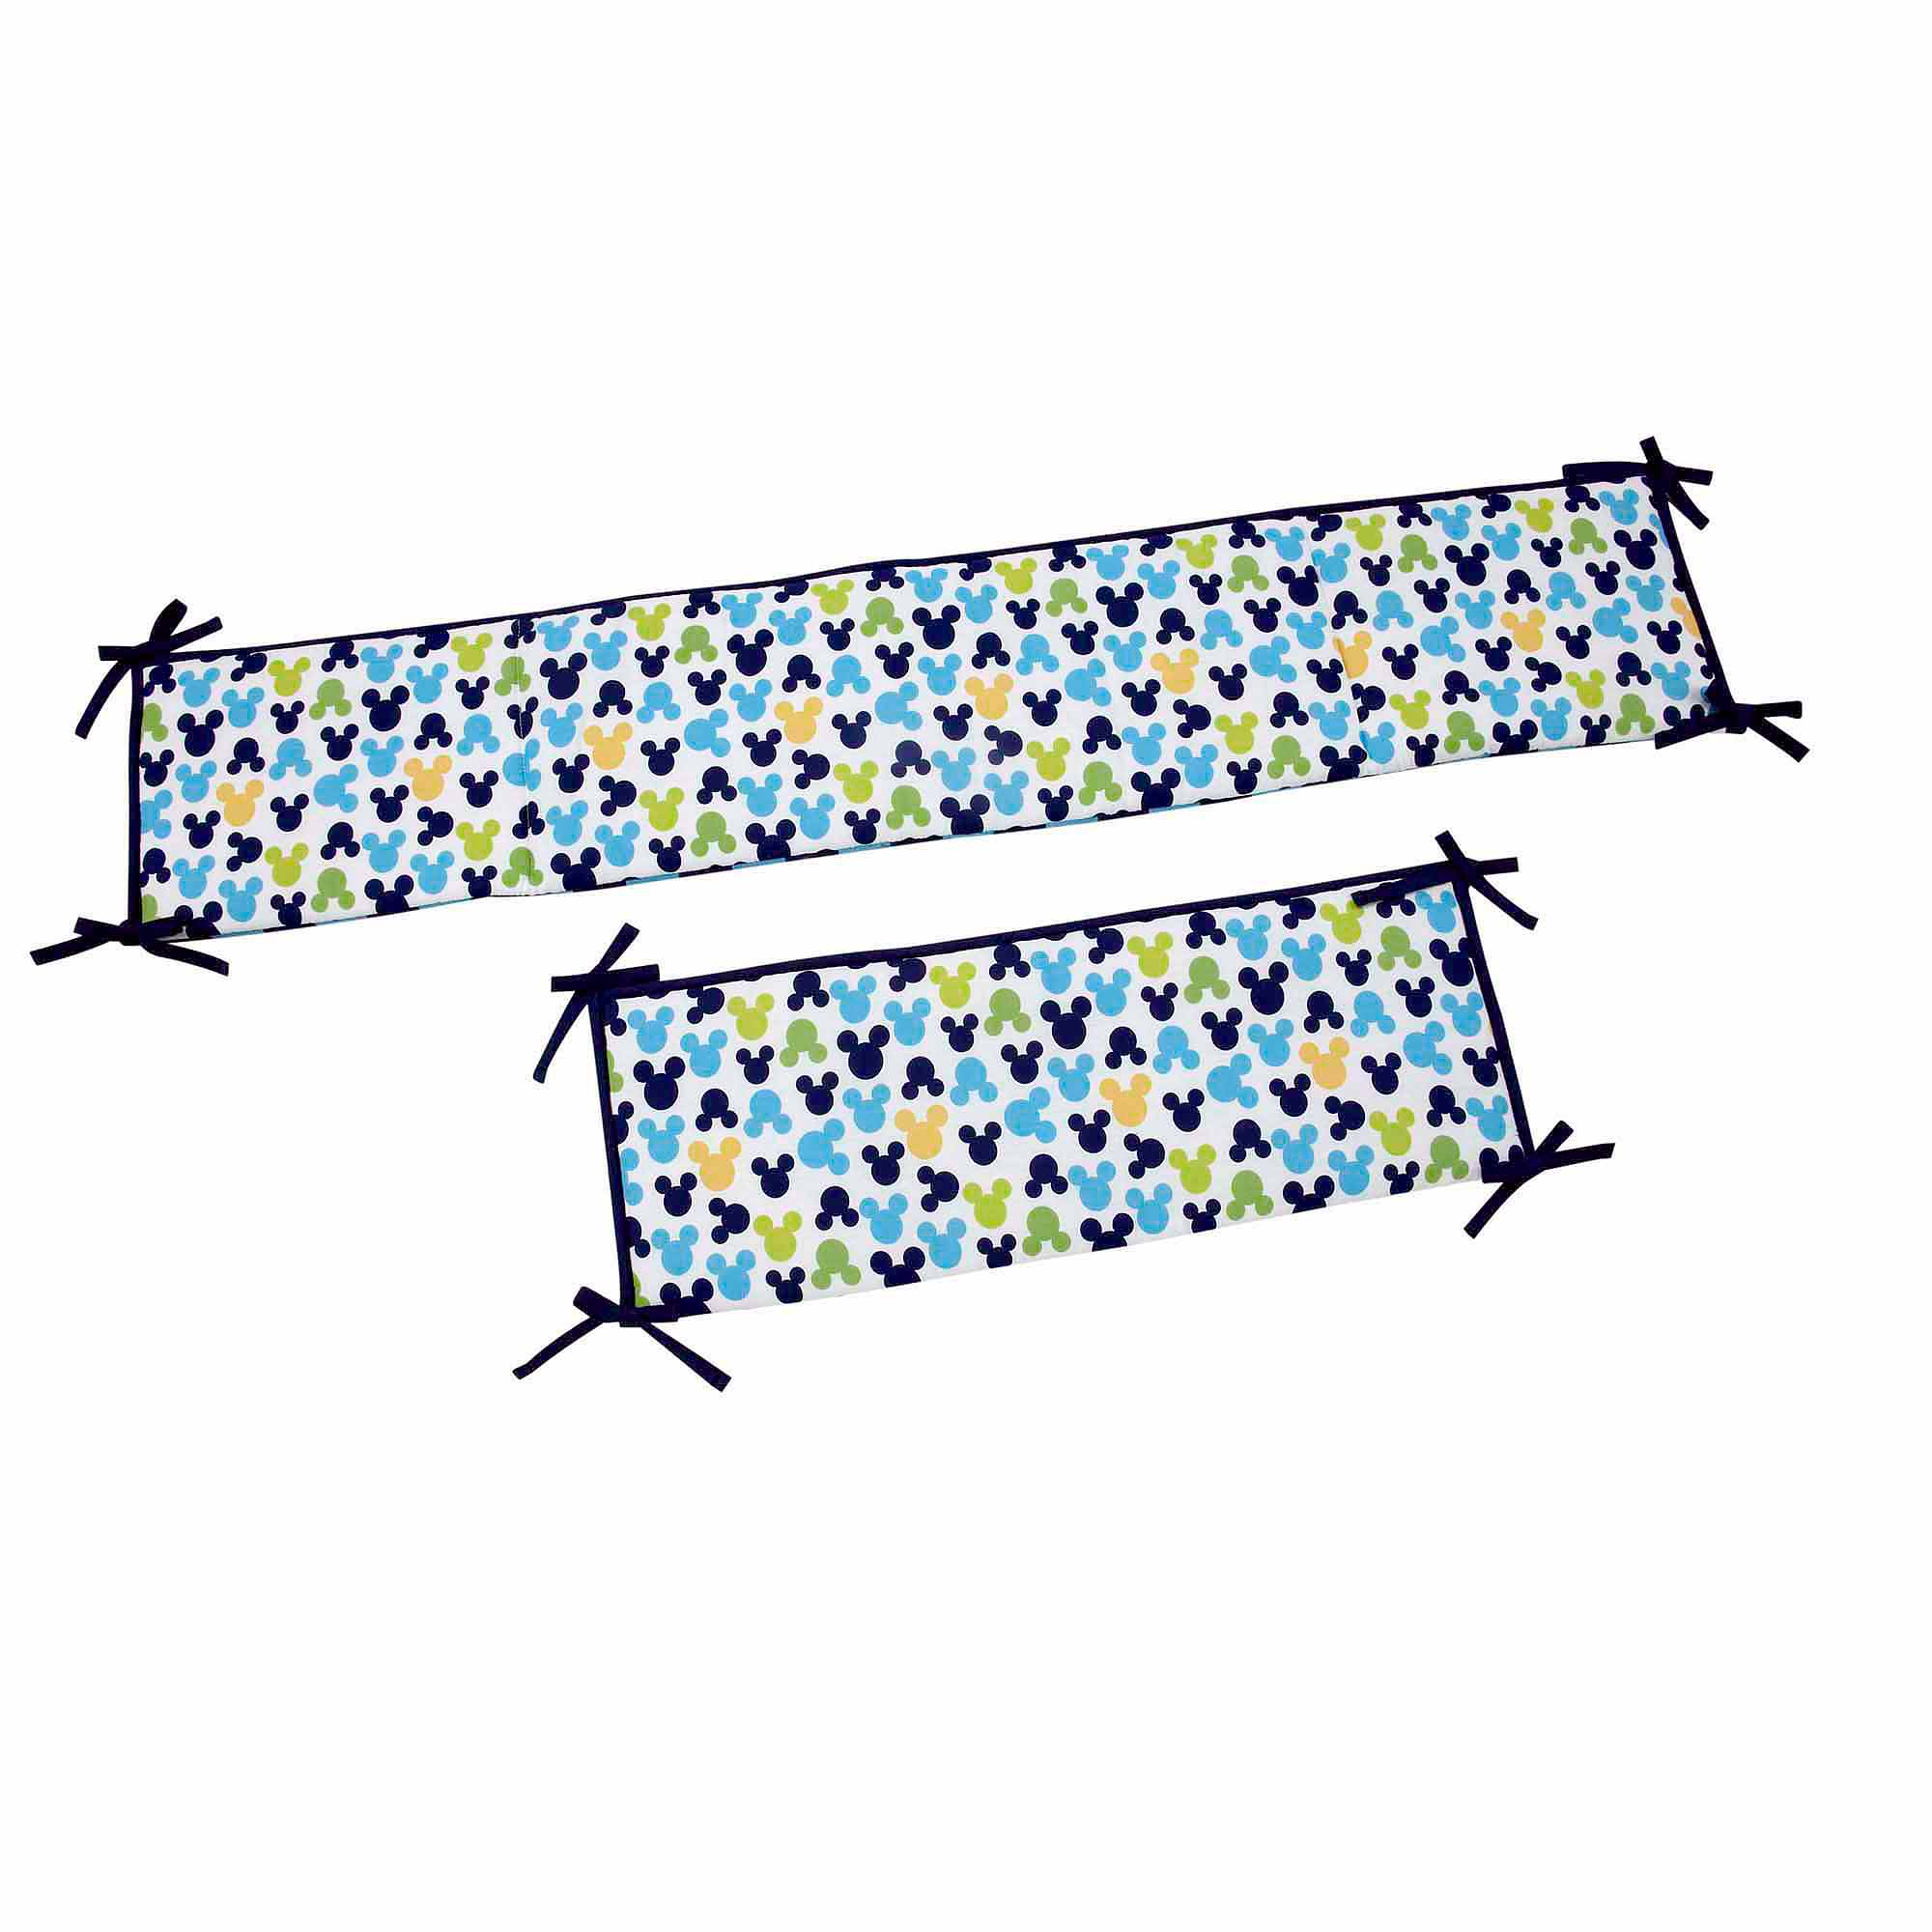 Disney Baby Bedding My Friend Mickey Mouse Crib Bumper